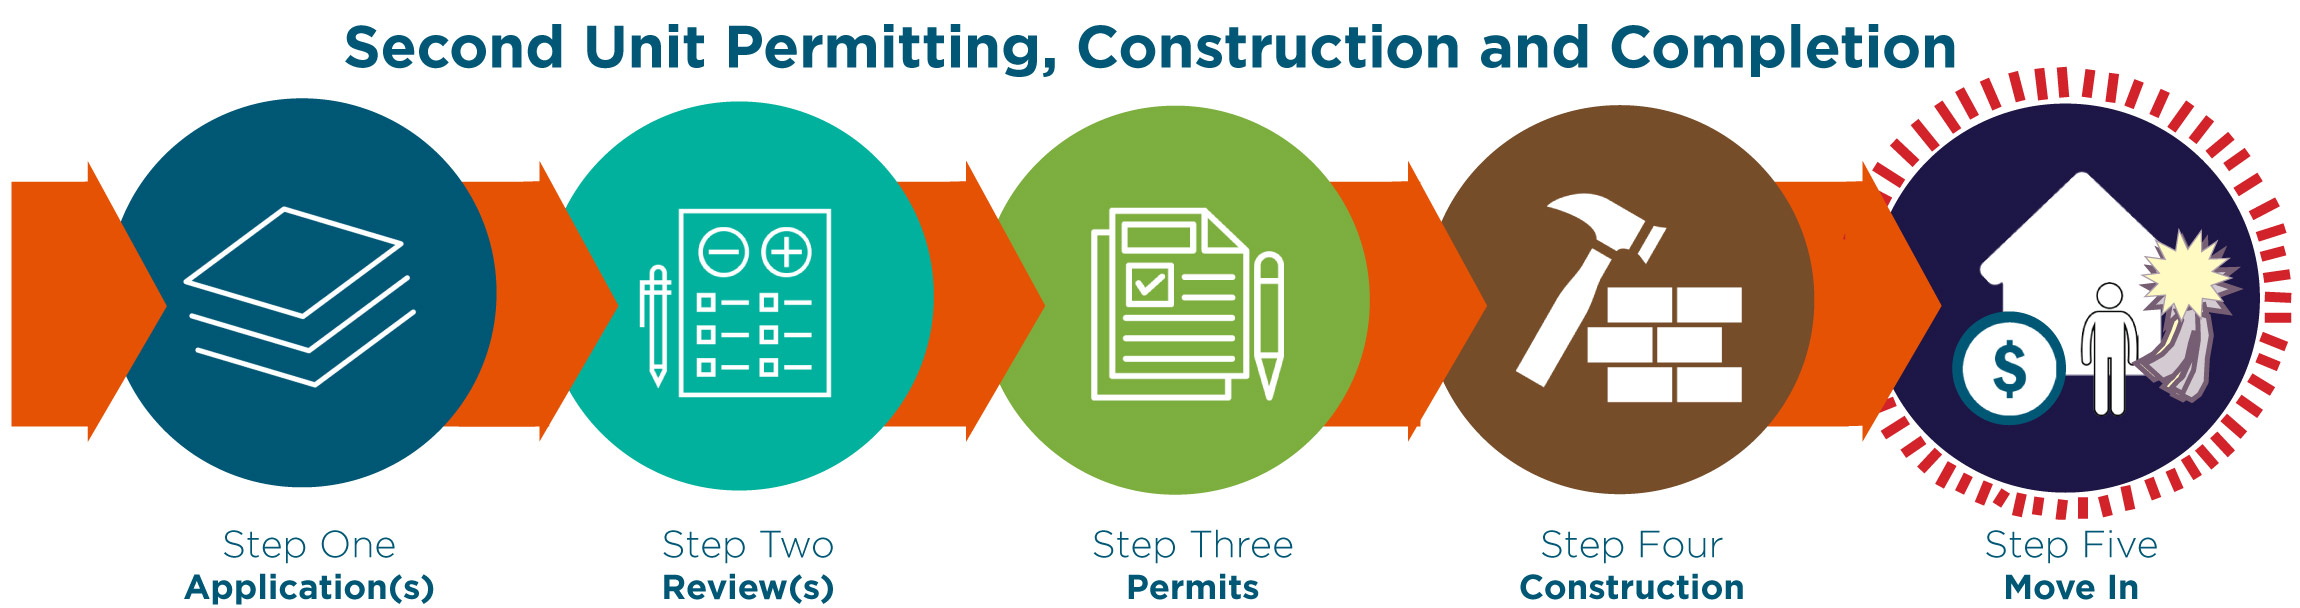 permitting process graphic